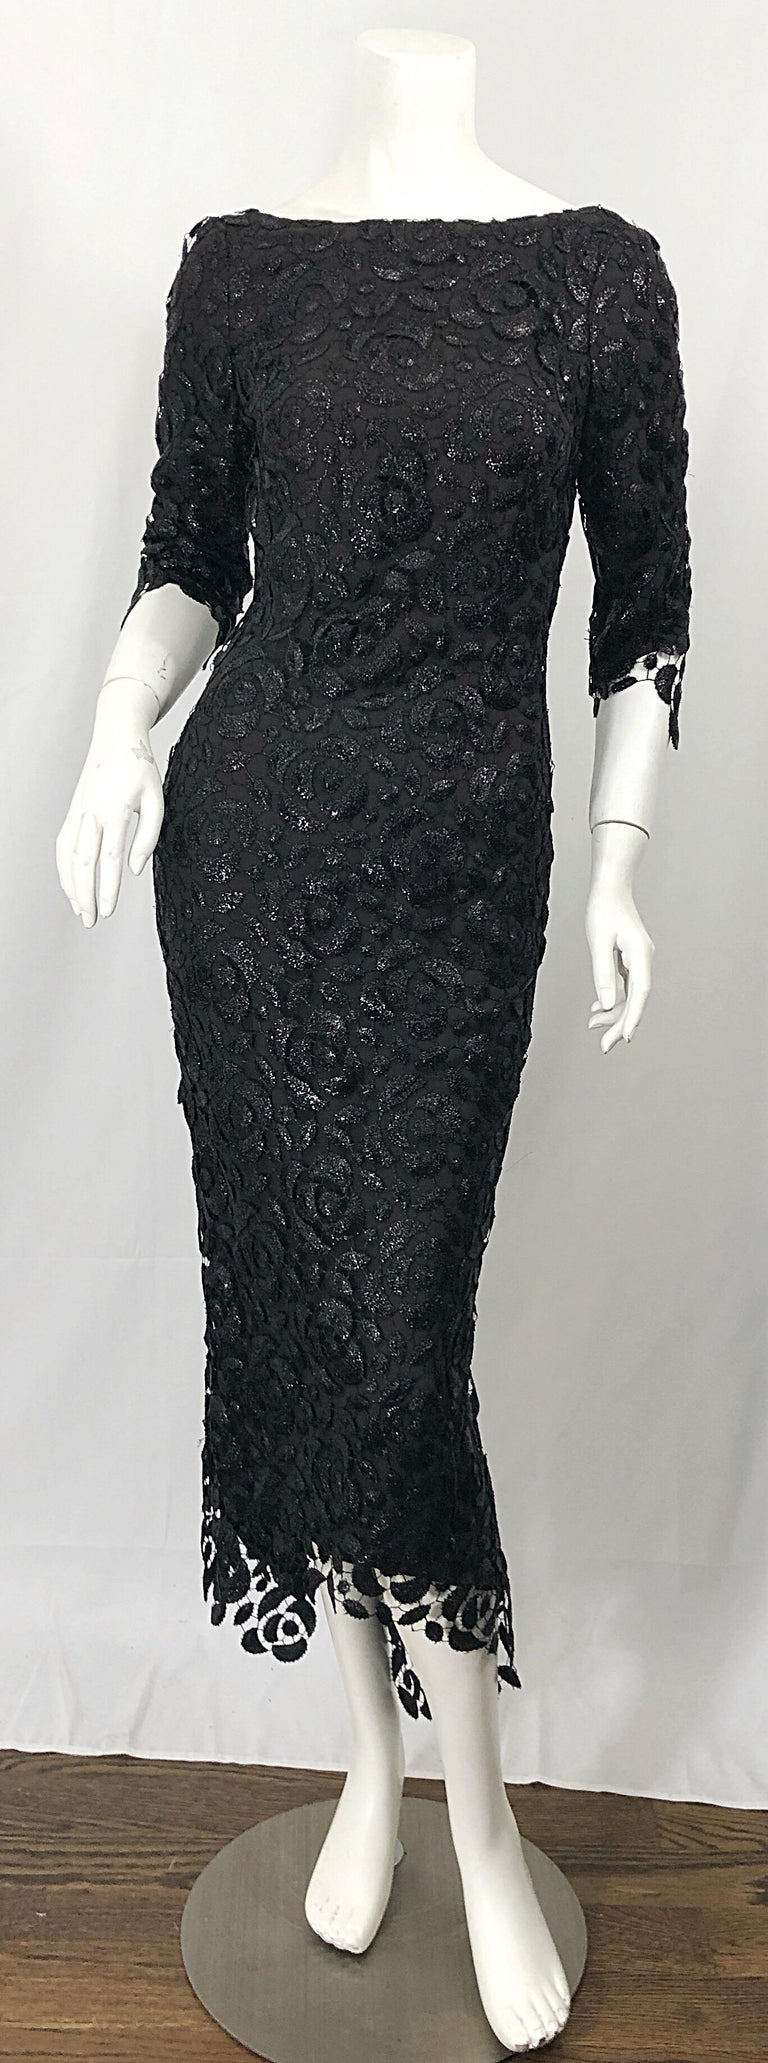 Stunning $10k Vintage Halston Black 3/4 Sleeves Silk Lace Crochet Sz 4 6 Dress For Sale 5